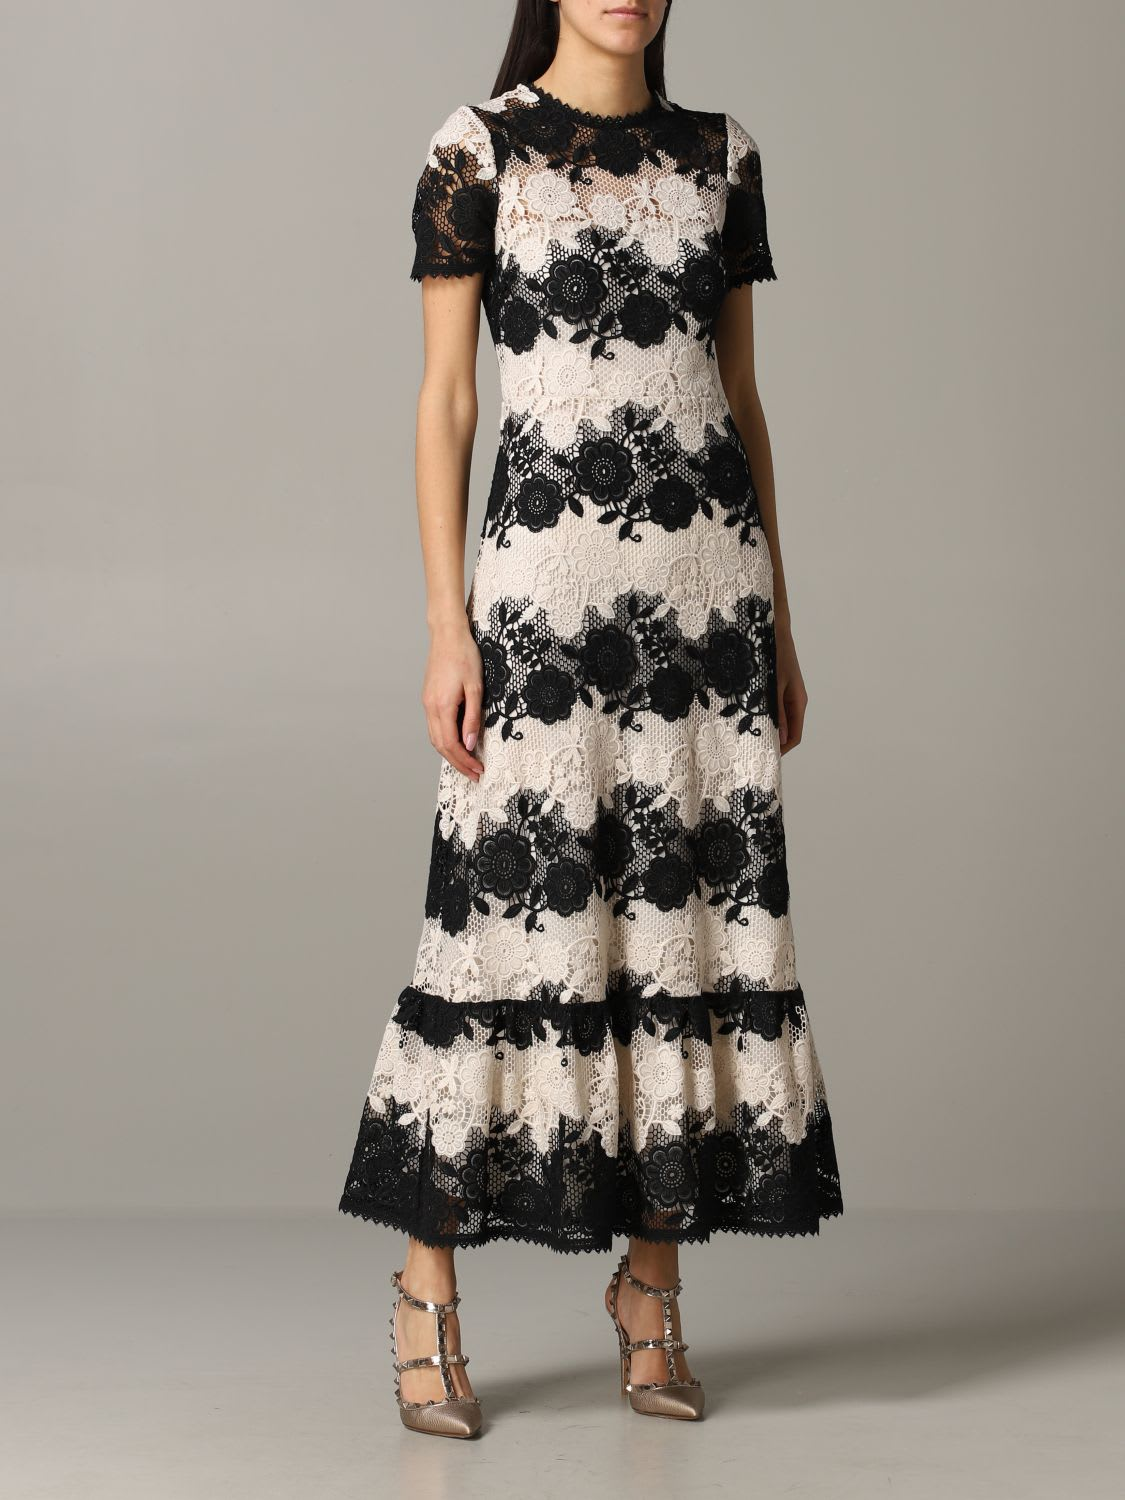 Buy Red Valentino Dress Red Valentino Two-tone Macramé Dress online, shop RED Valentino with free shipping